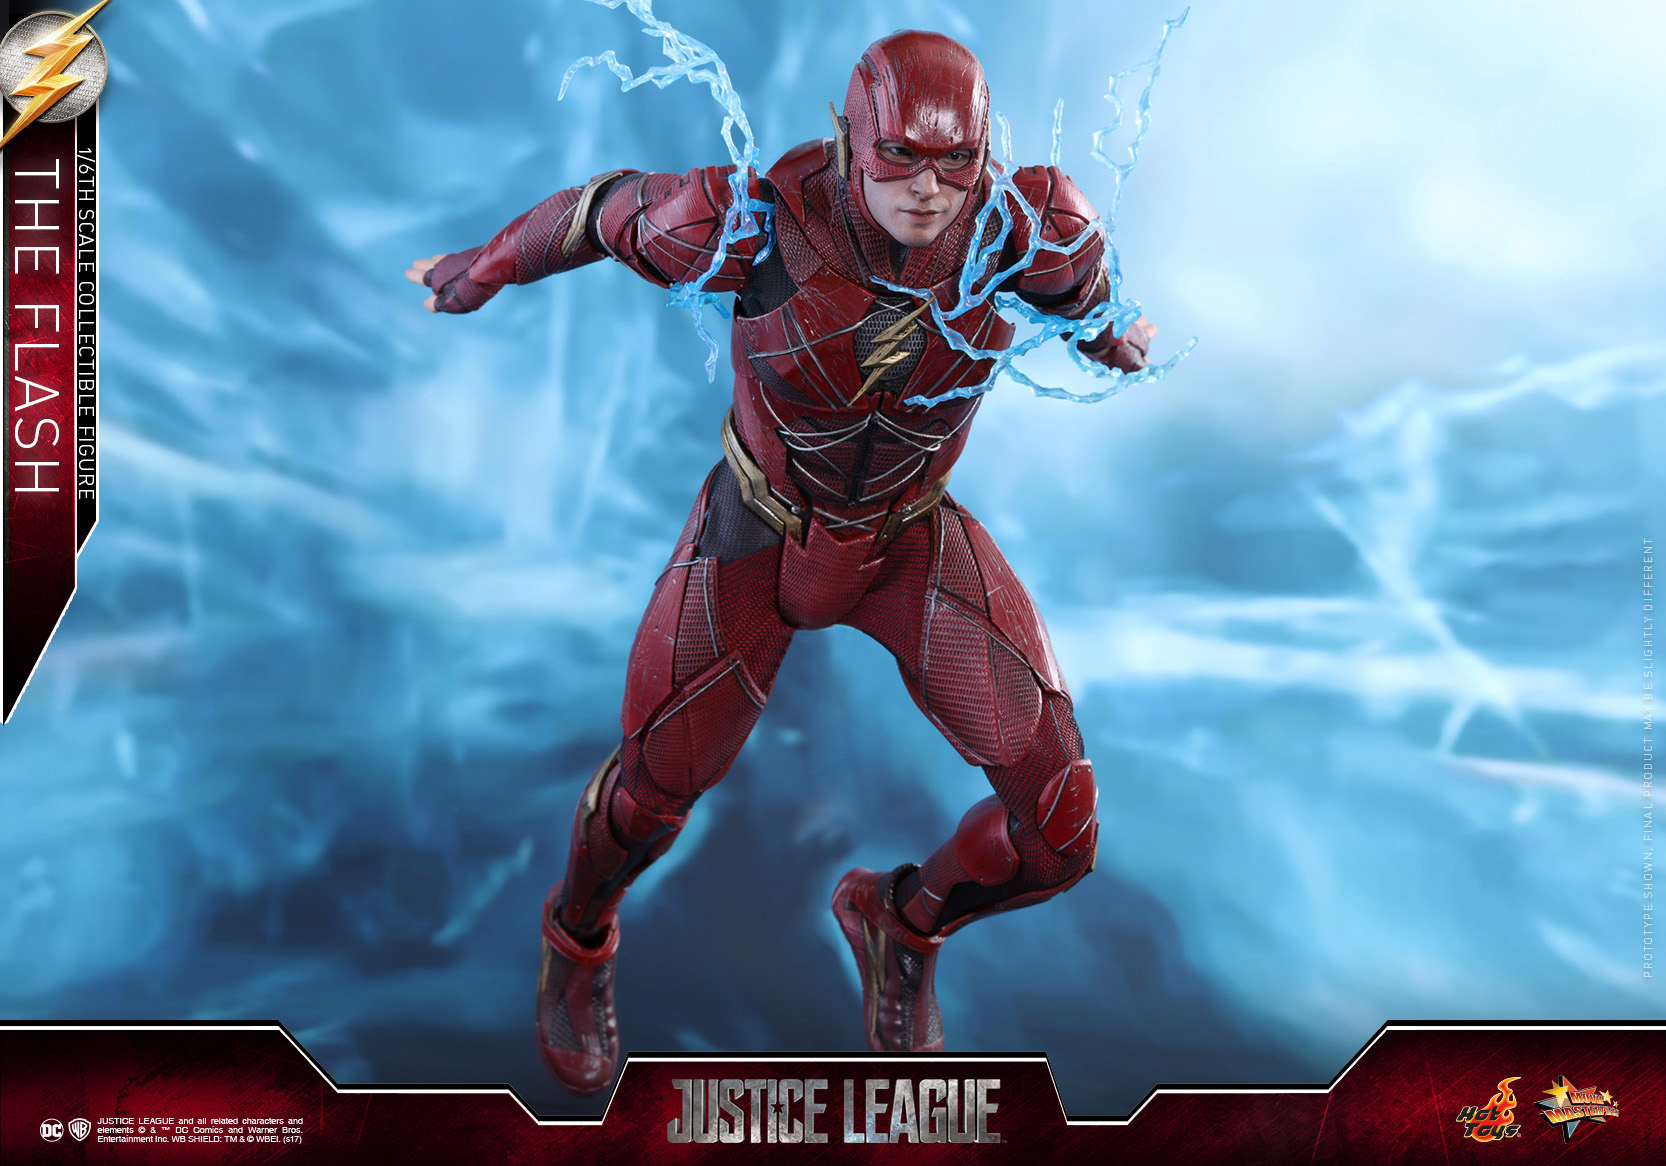 Hot Toys - Justice League - The Flash Collectible Figure_PR09.jpg